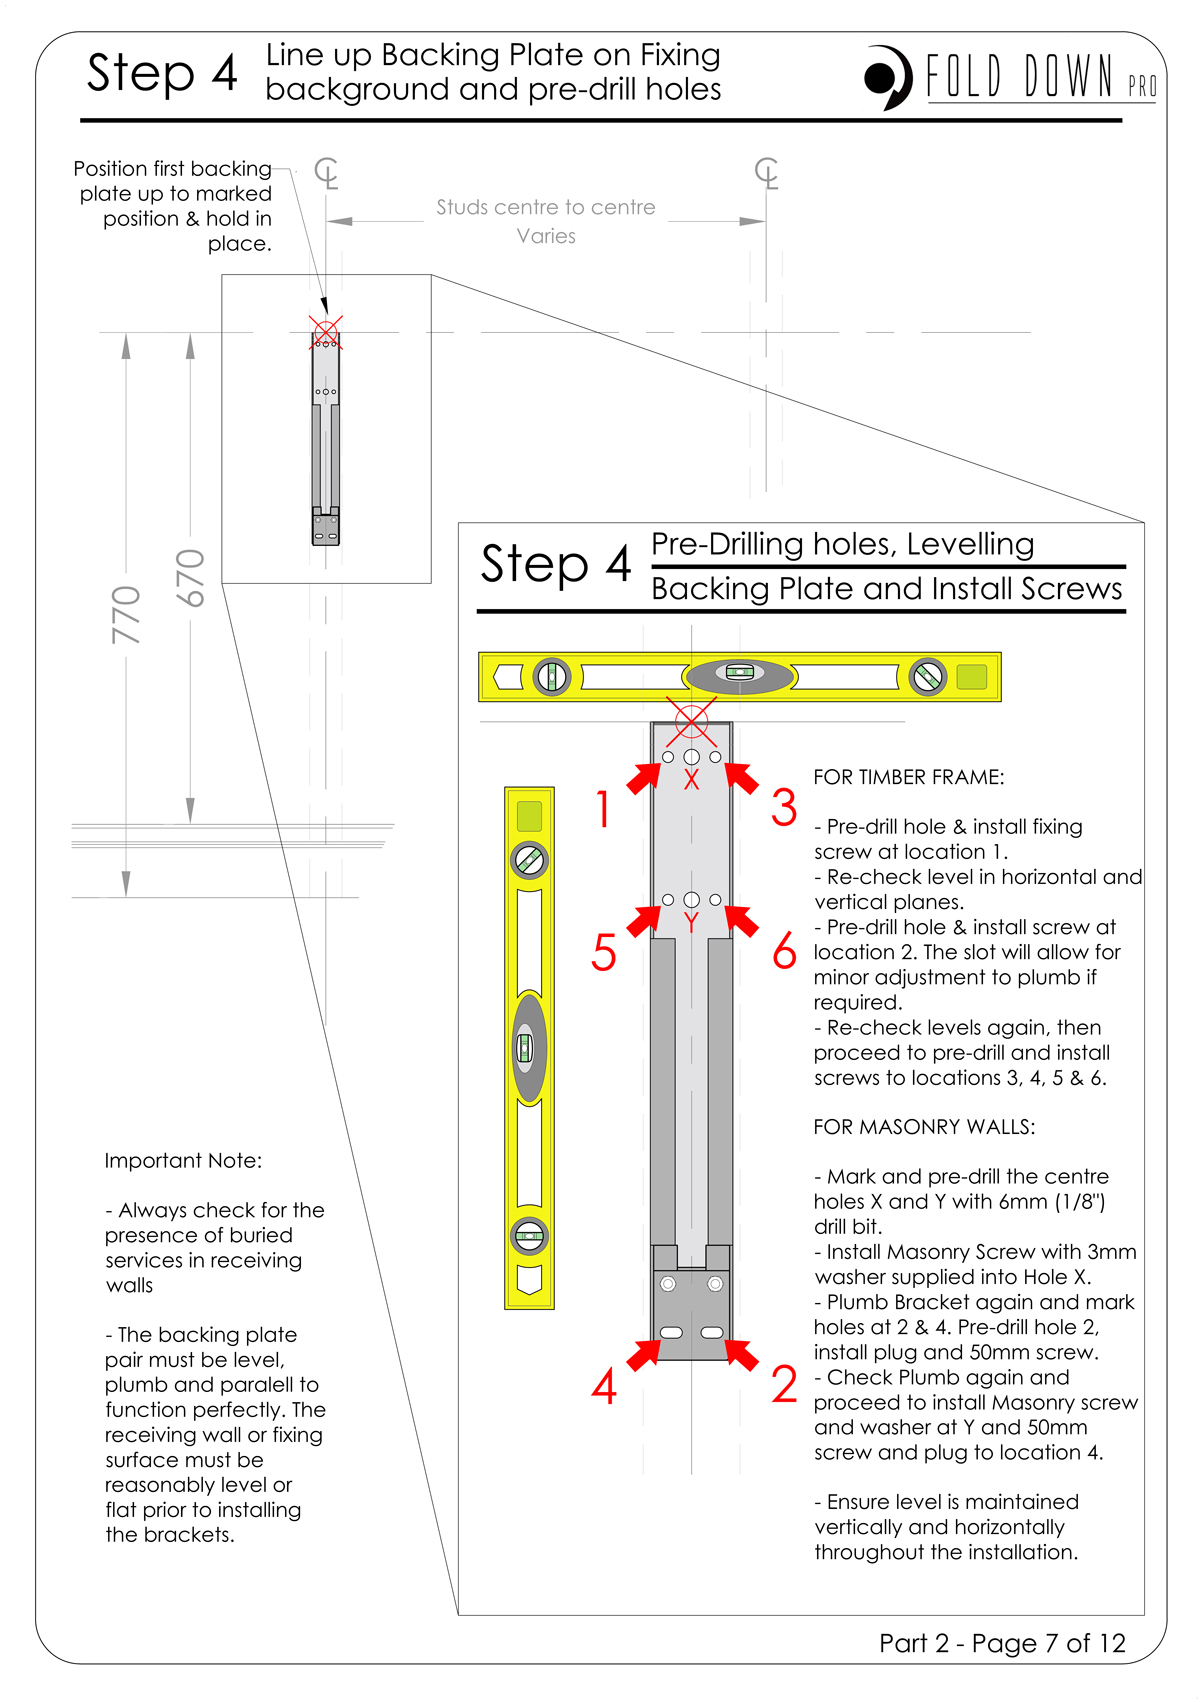 FDP Wall Mounted Folding Bracket Instruction Page 7